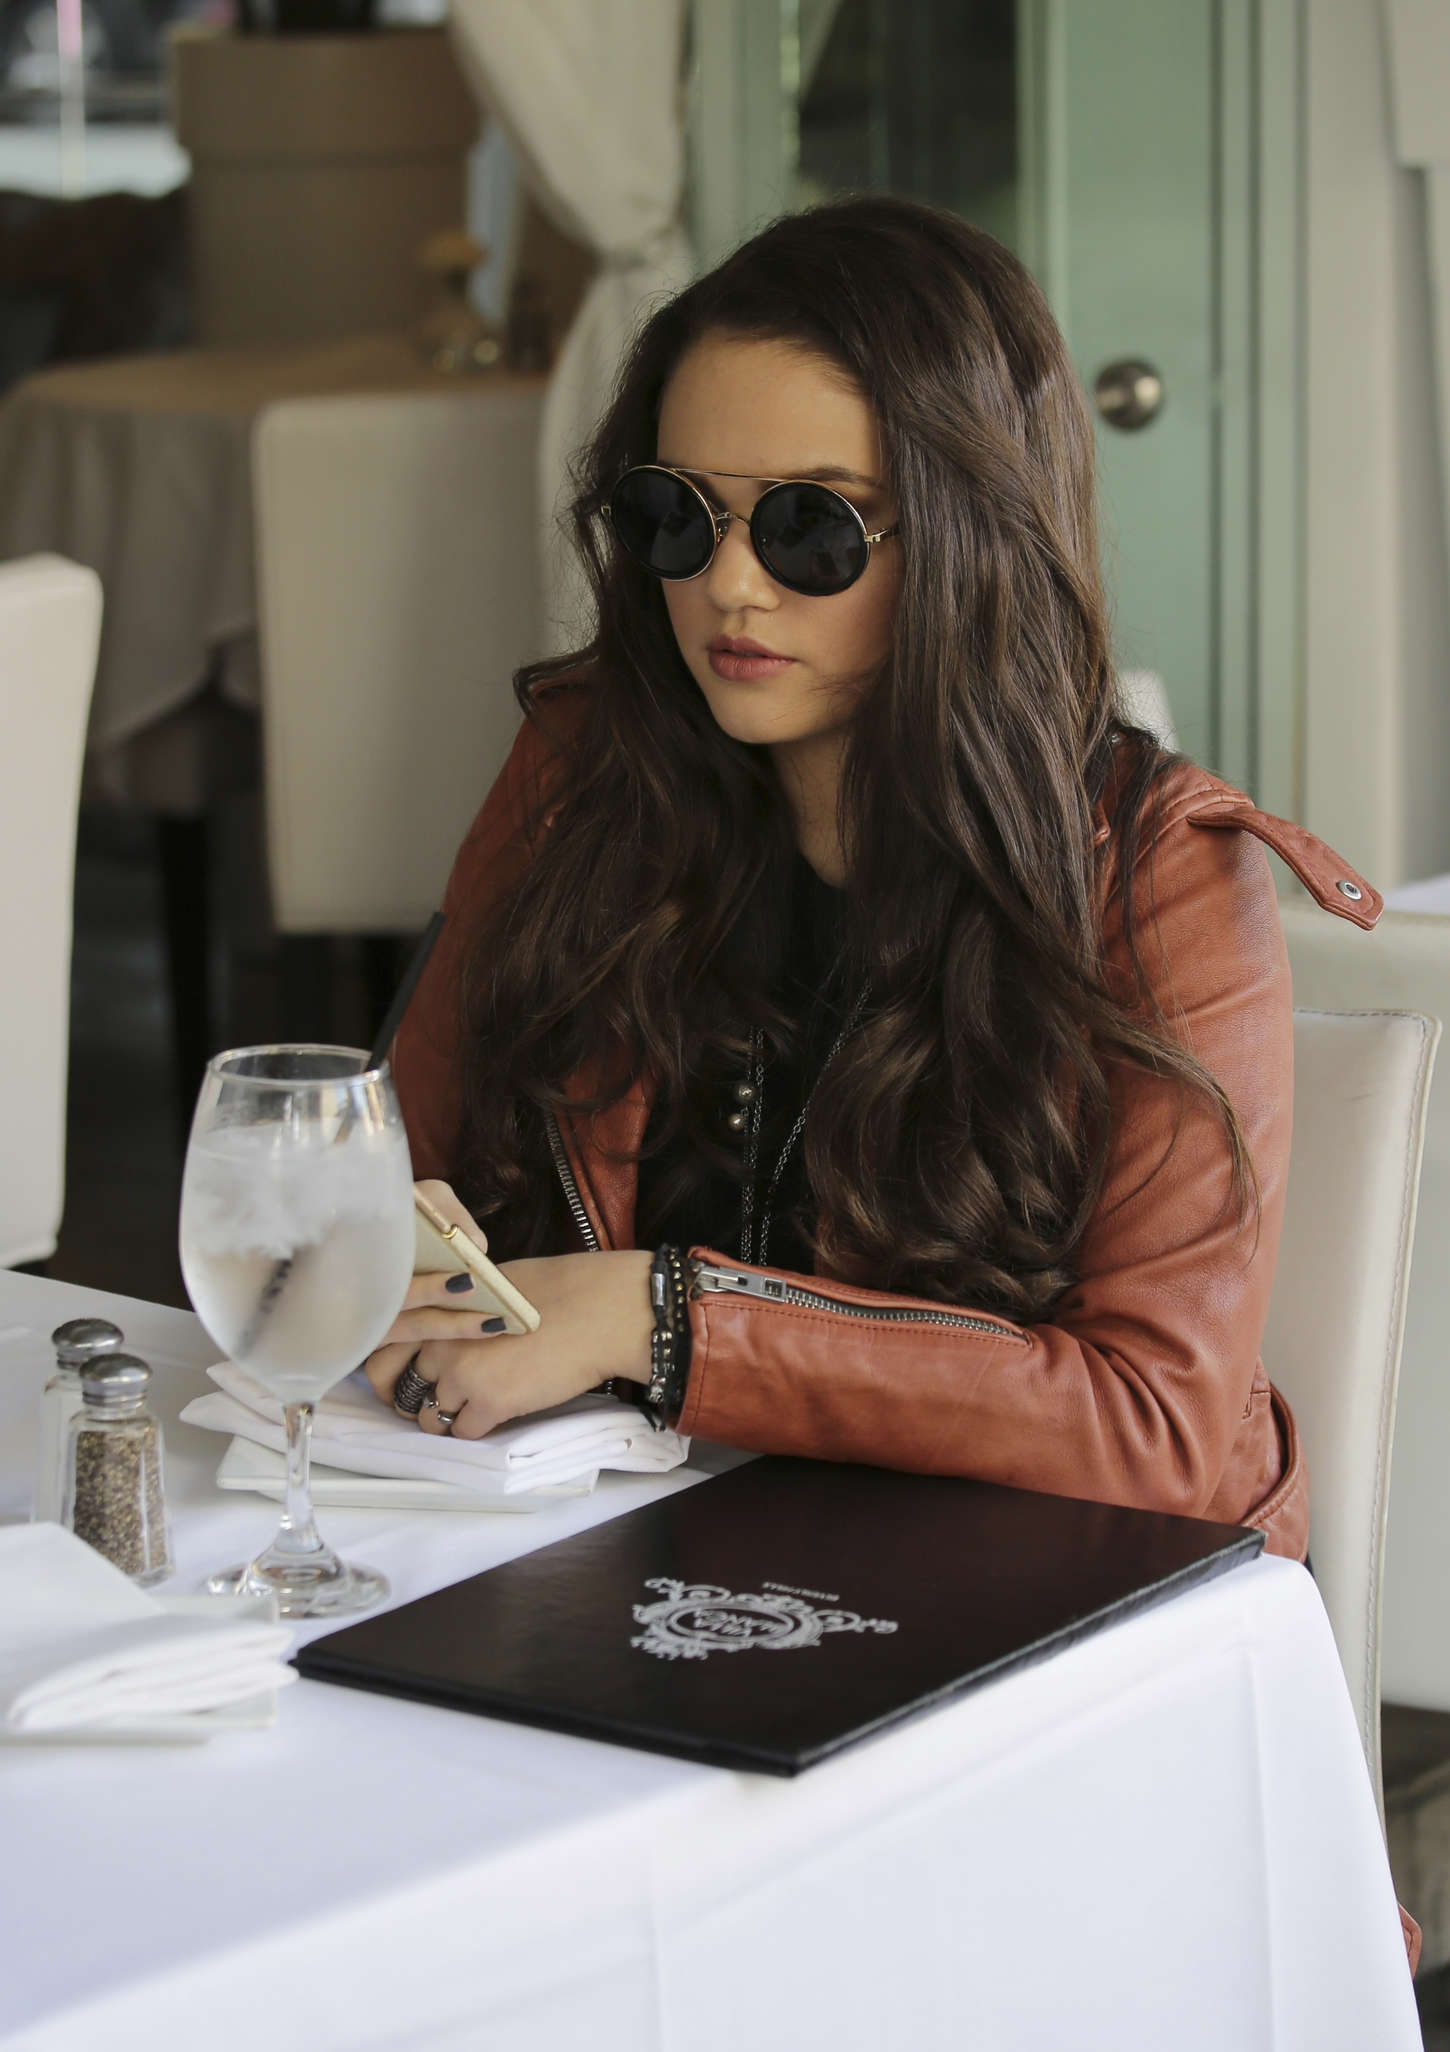 Madison Pettis Villa Blanca Restaurant in Beverly Hills